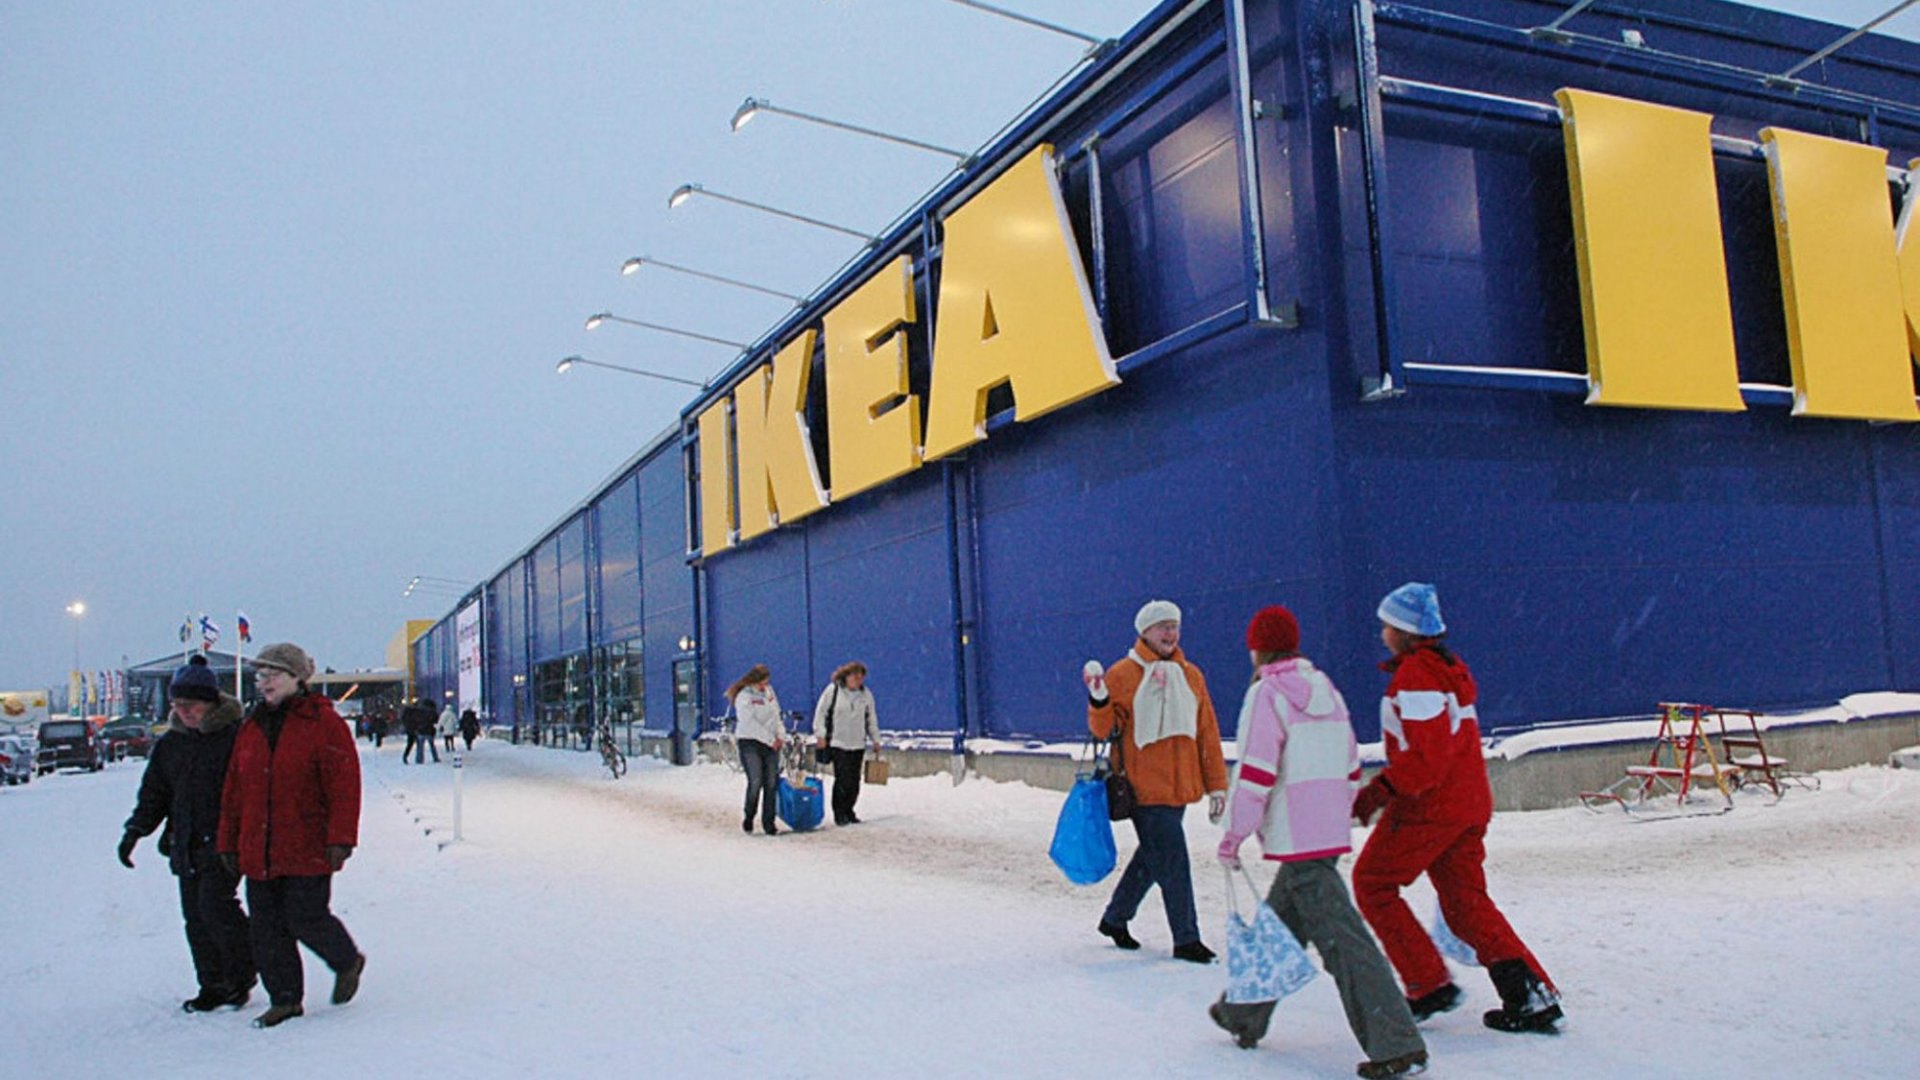 Want to Give Your Home an IKEA Makeover via Amazon Prime? The Dream Could Soon Be Reality